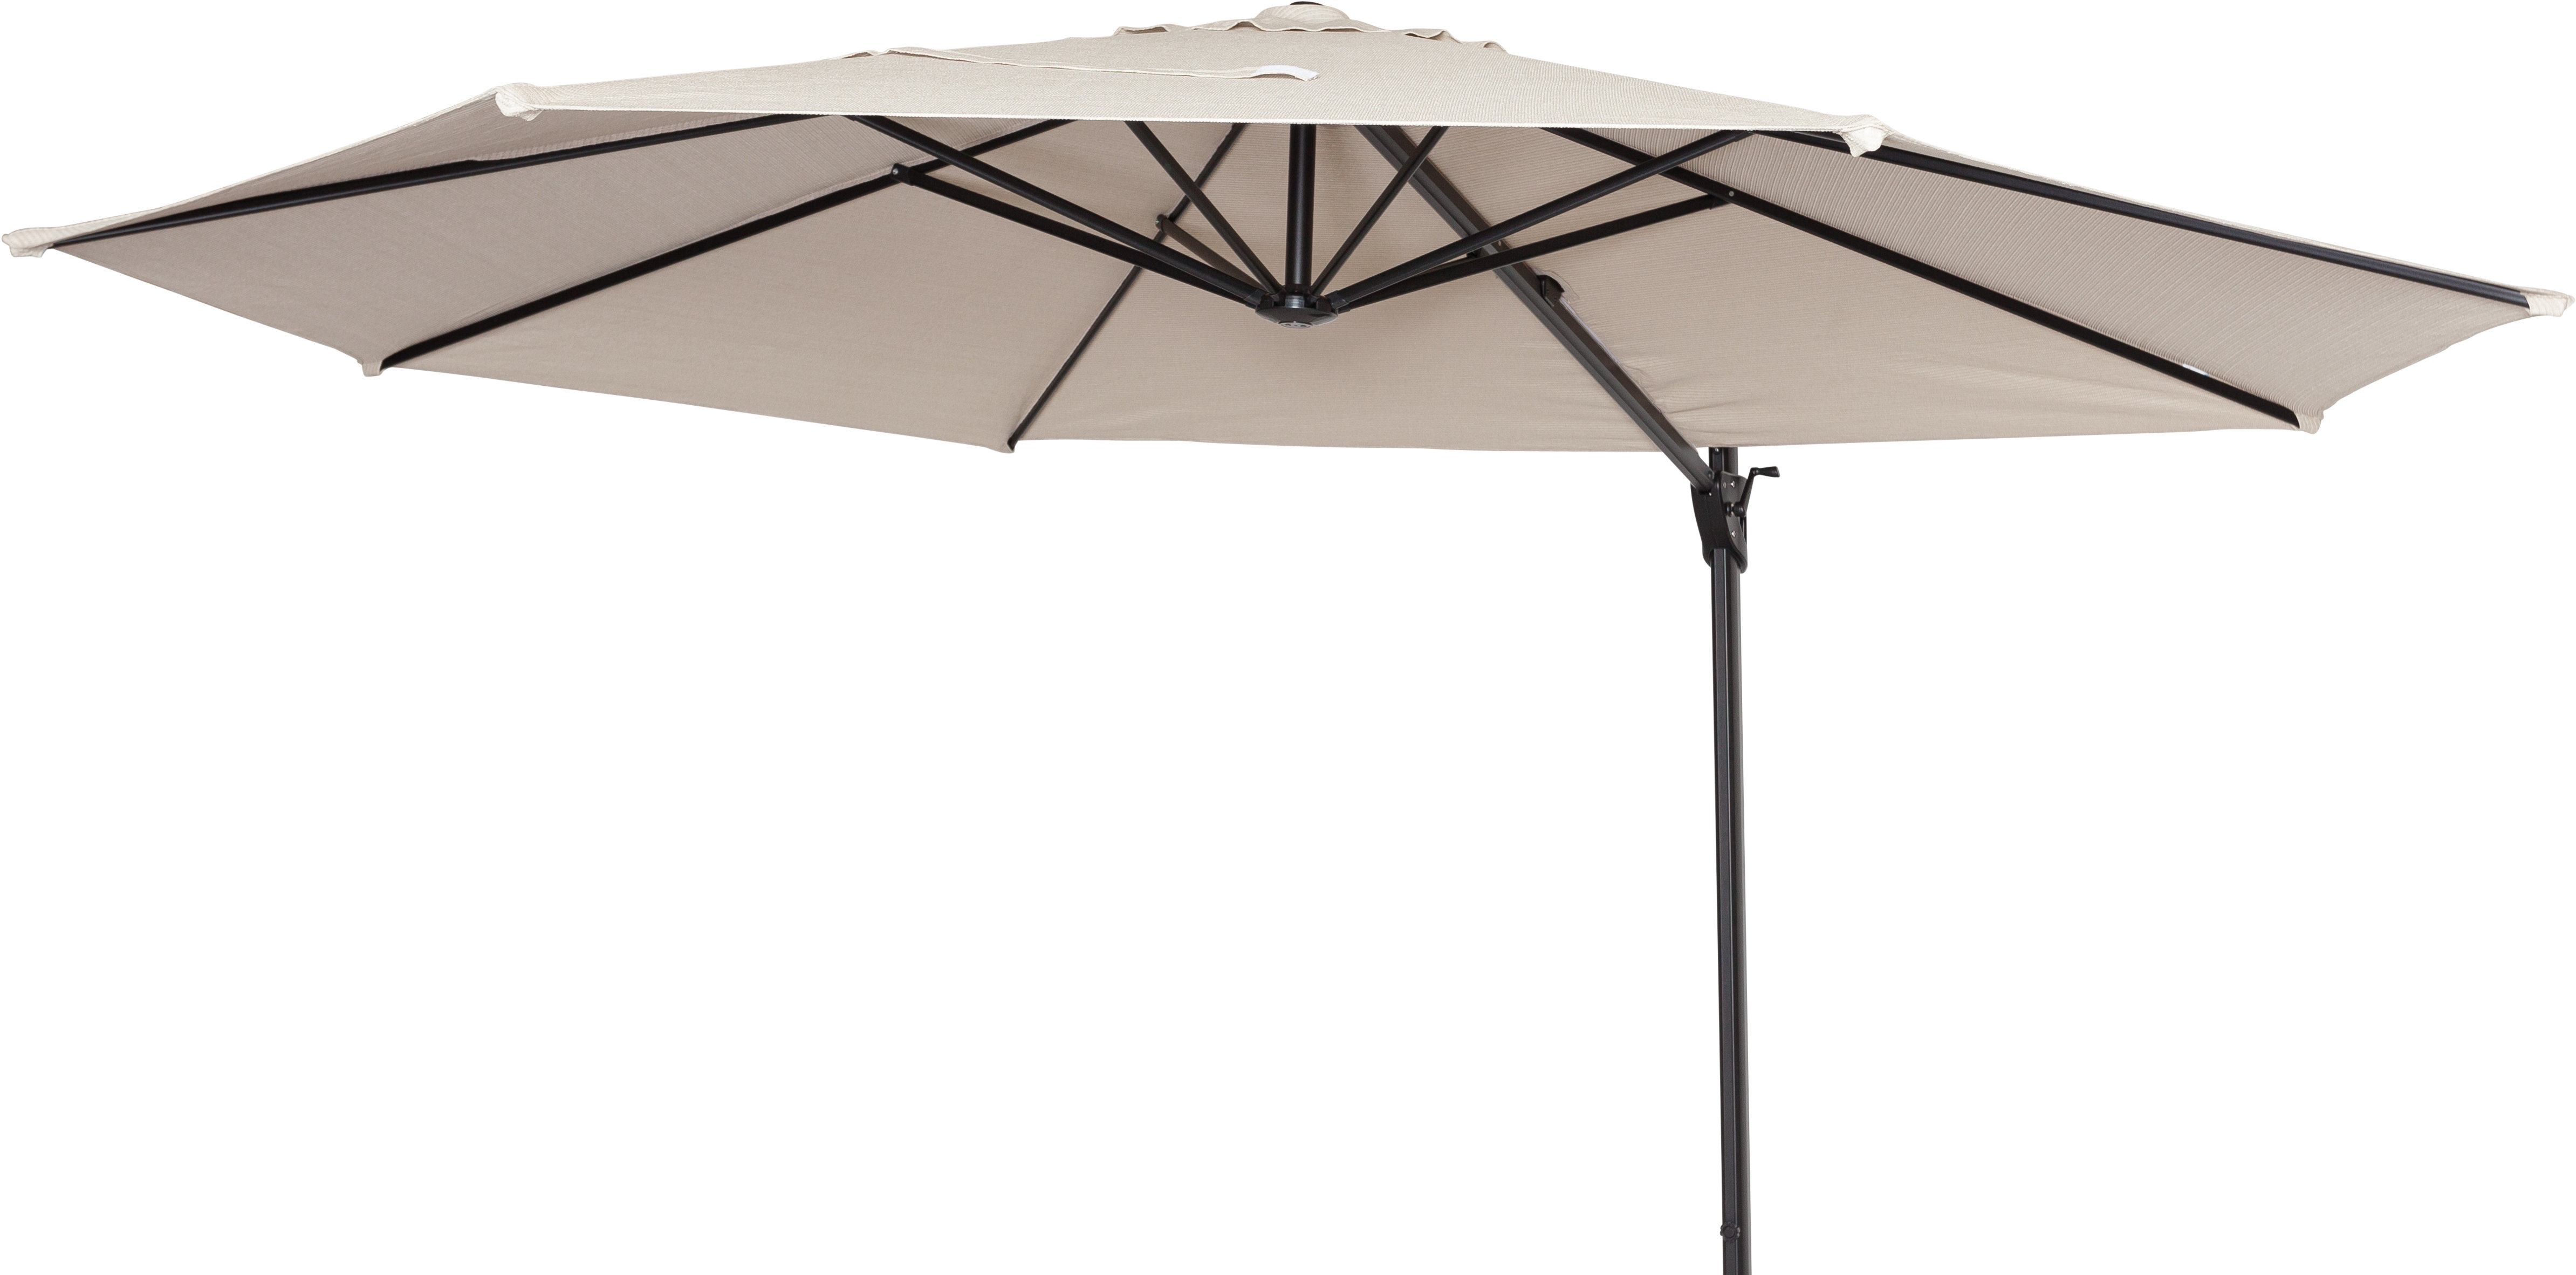 12' Cantilever Umbrella Intended For 2019 Coolaroo Cantilever Umbrellas (Gallery 3 of 20)